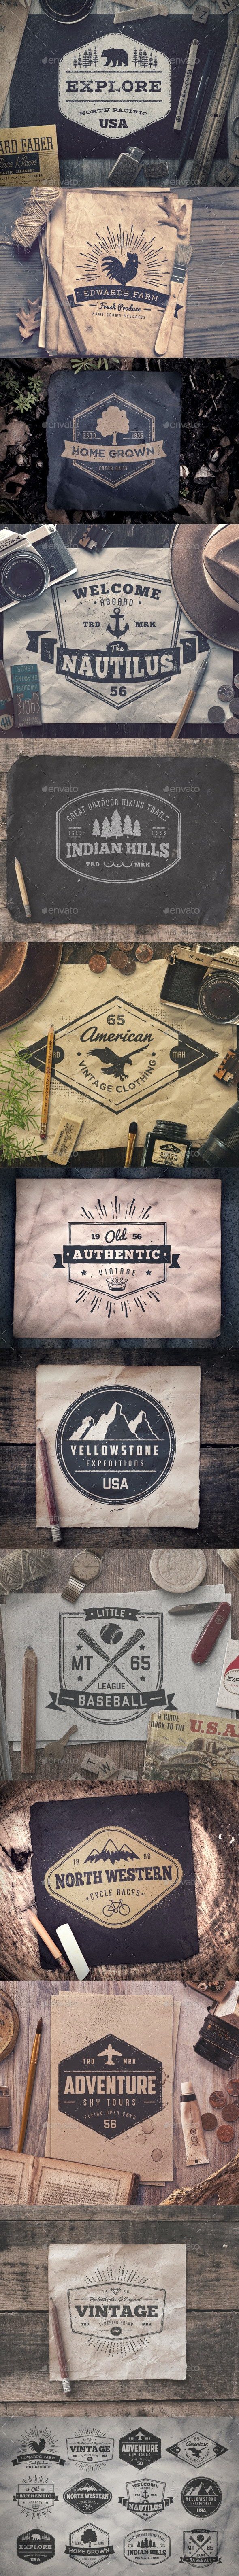 Worn Out Vintage Badges and Logos Vol1 - Badges & Stickers Web Elements